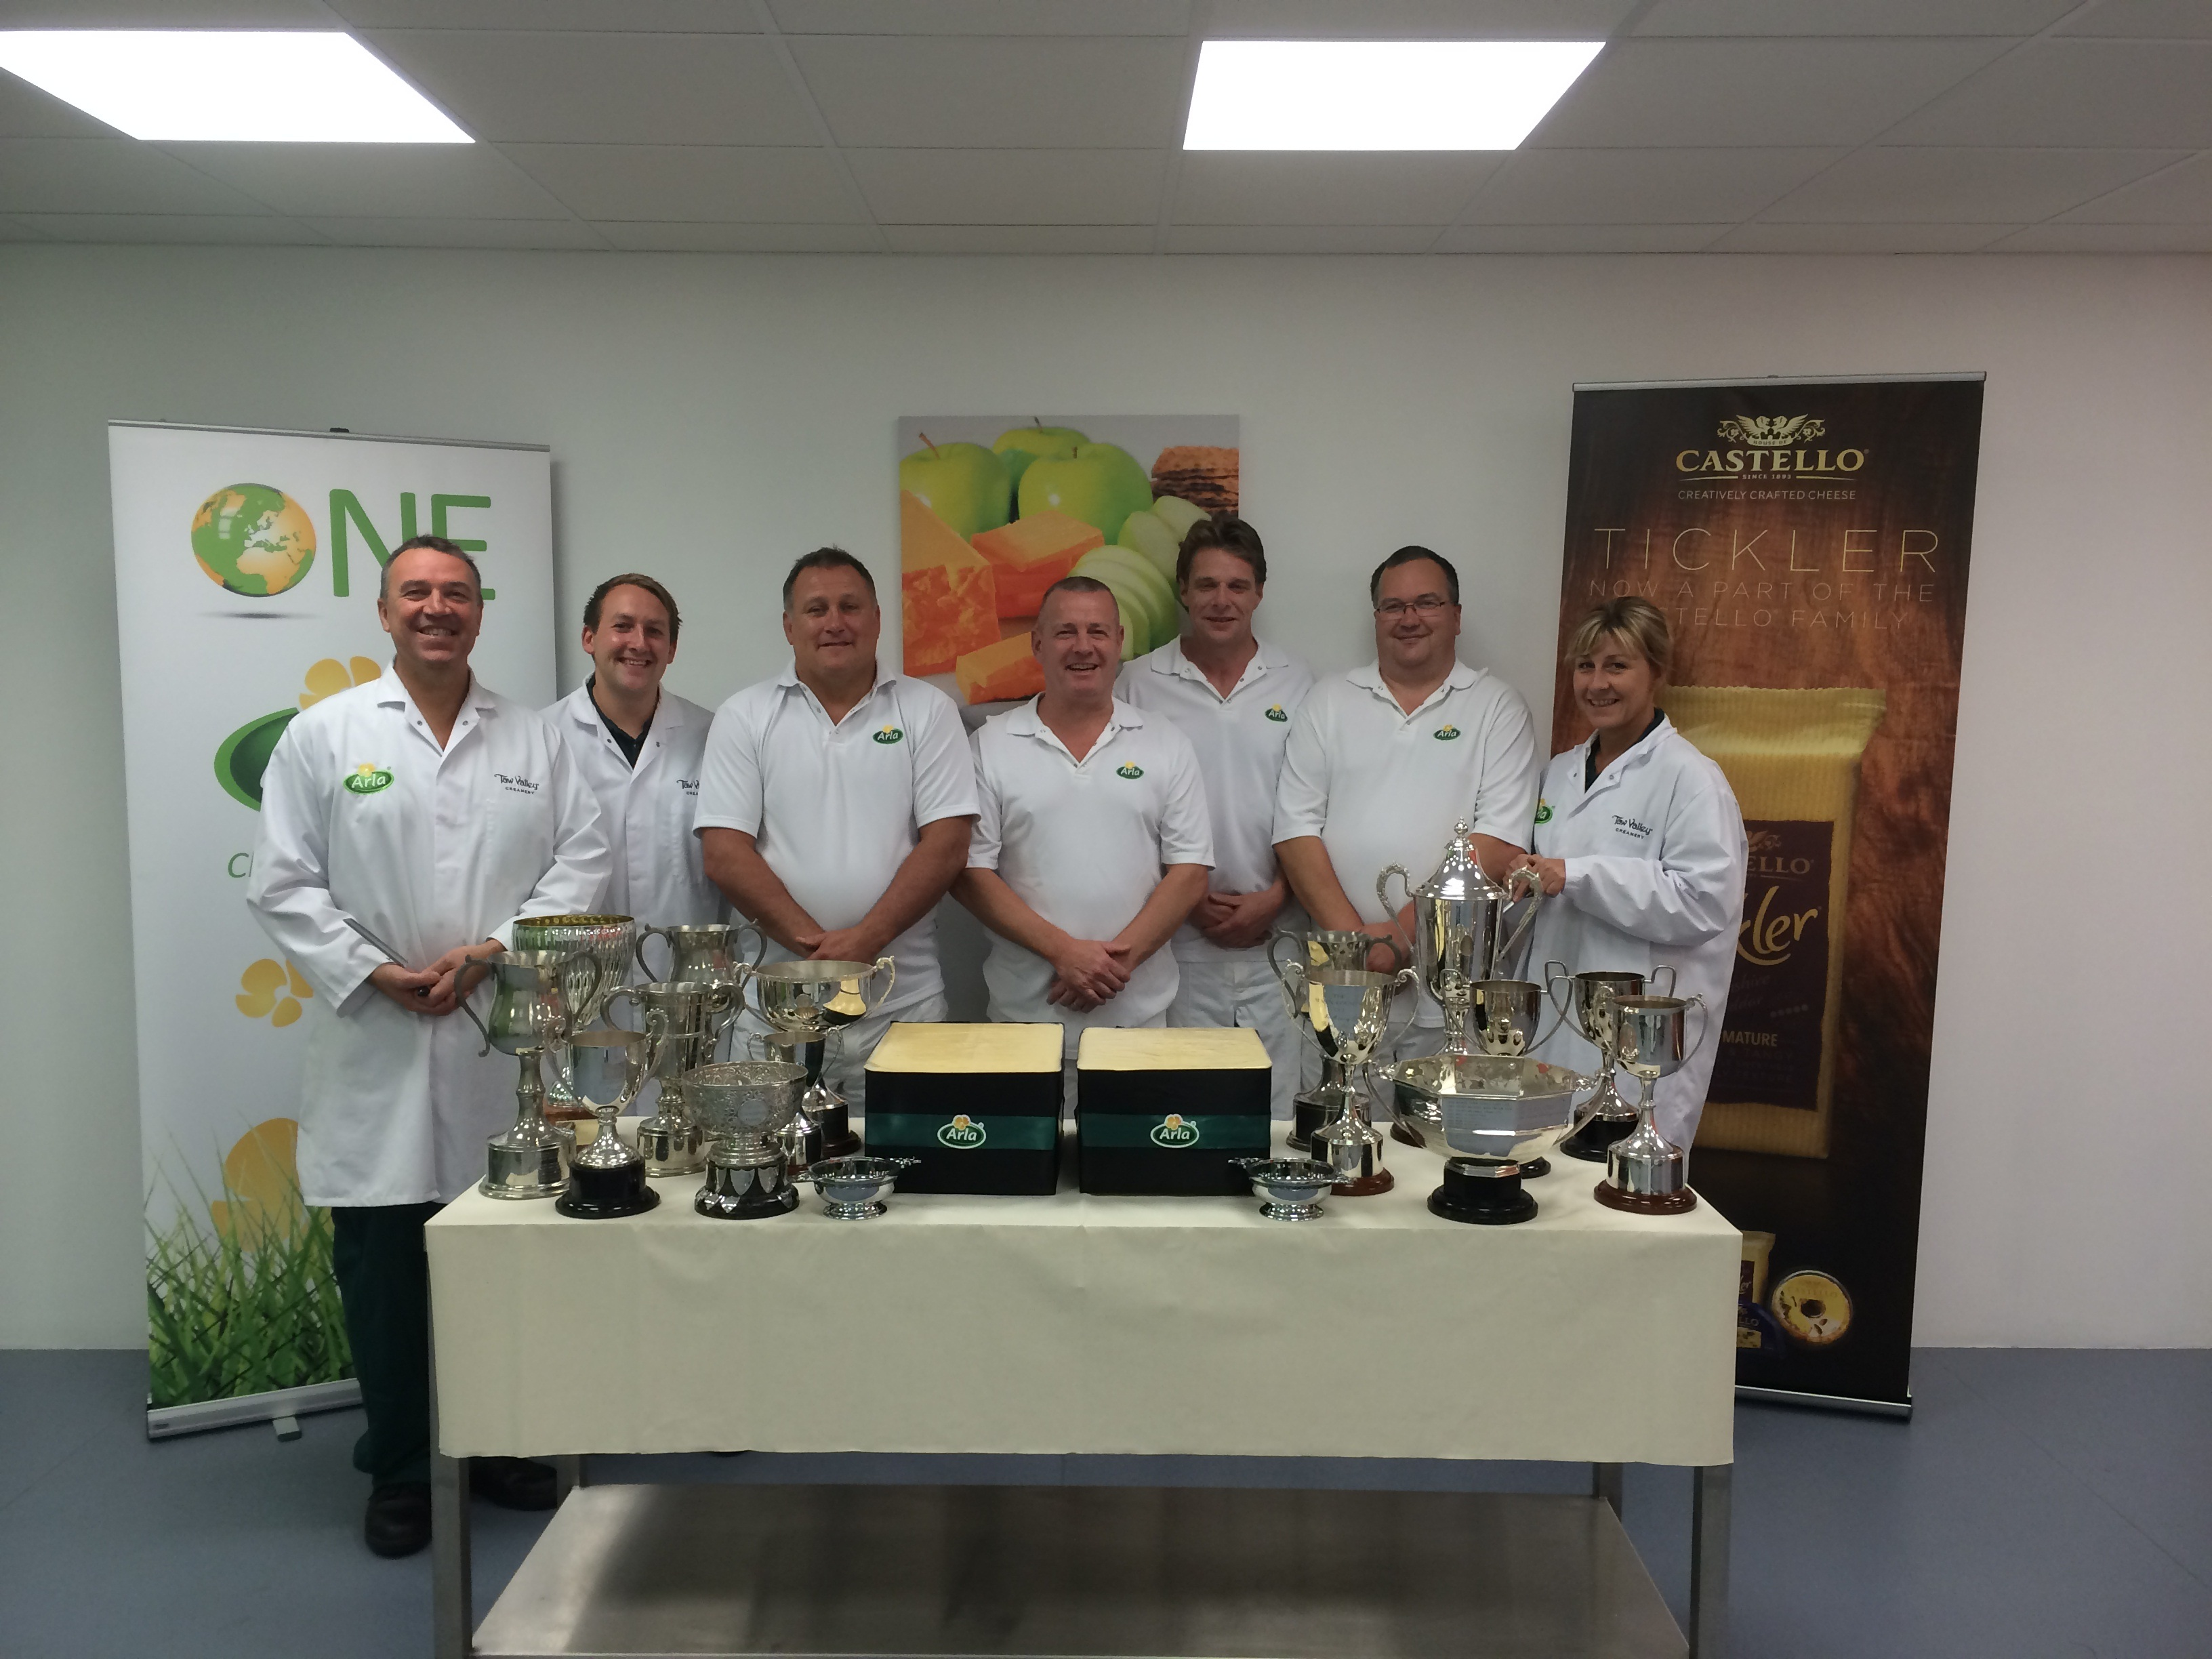 Arla Foods sweeps the board at the Global Cheese Show picking up 52 awards